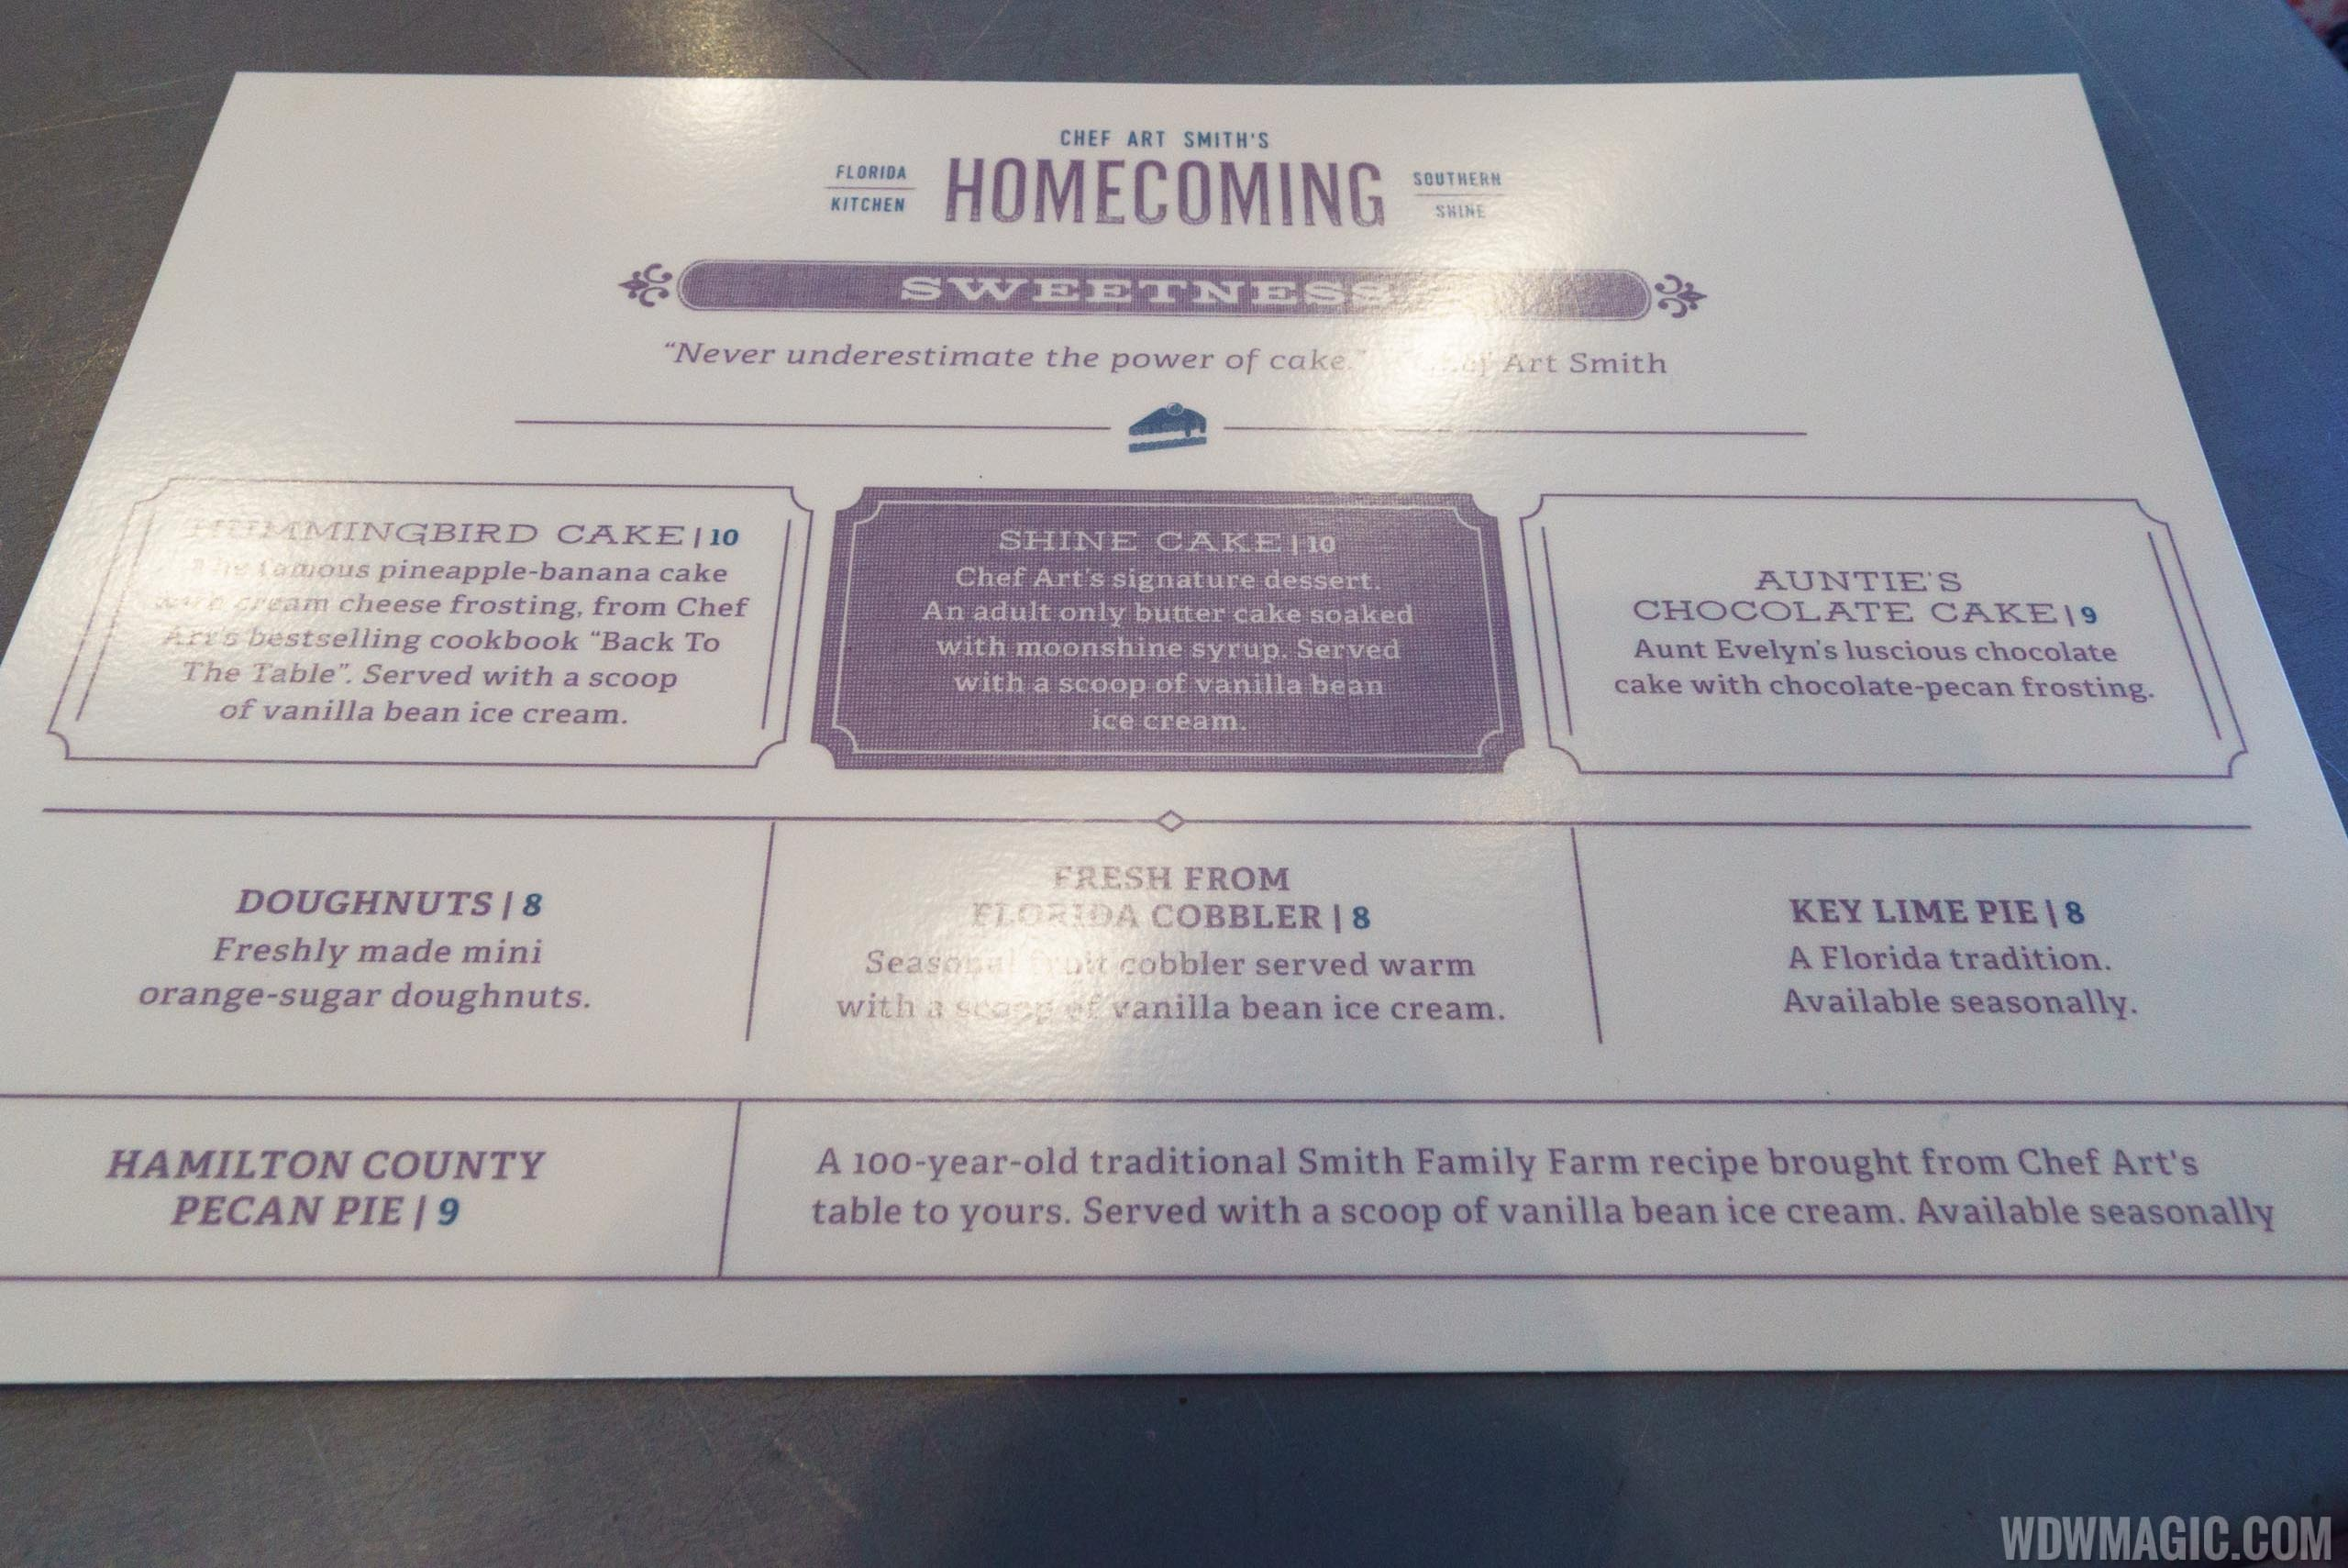 Homecoming restaurant - Dessert menu